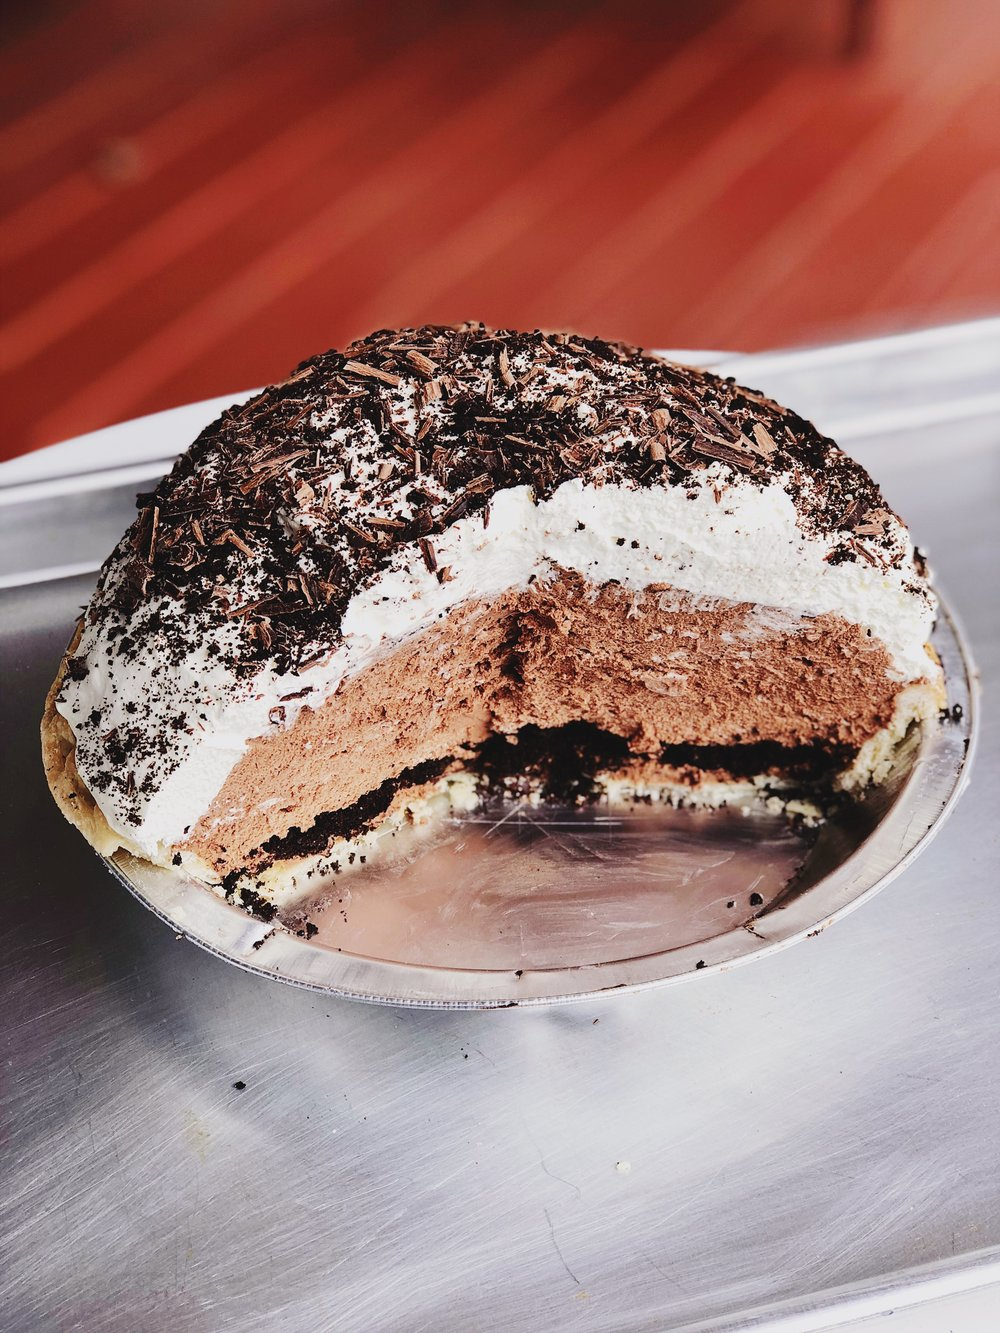 Mile High Chocolate Mousse Pie | Becca Bakes (www.becca-bakes.com)